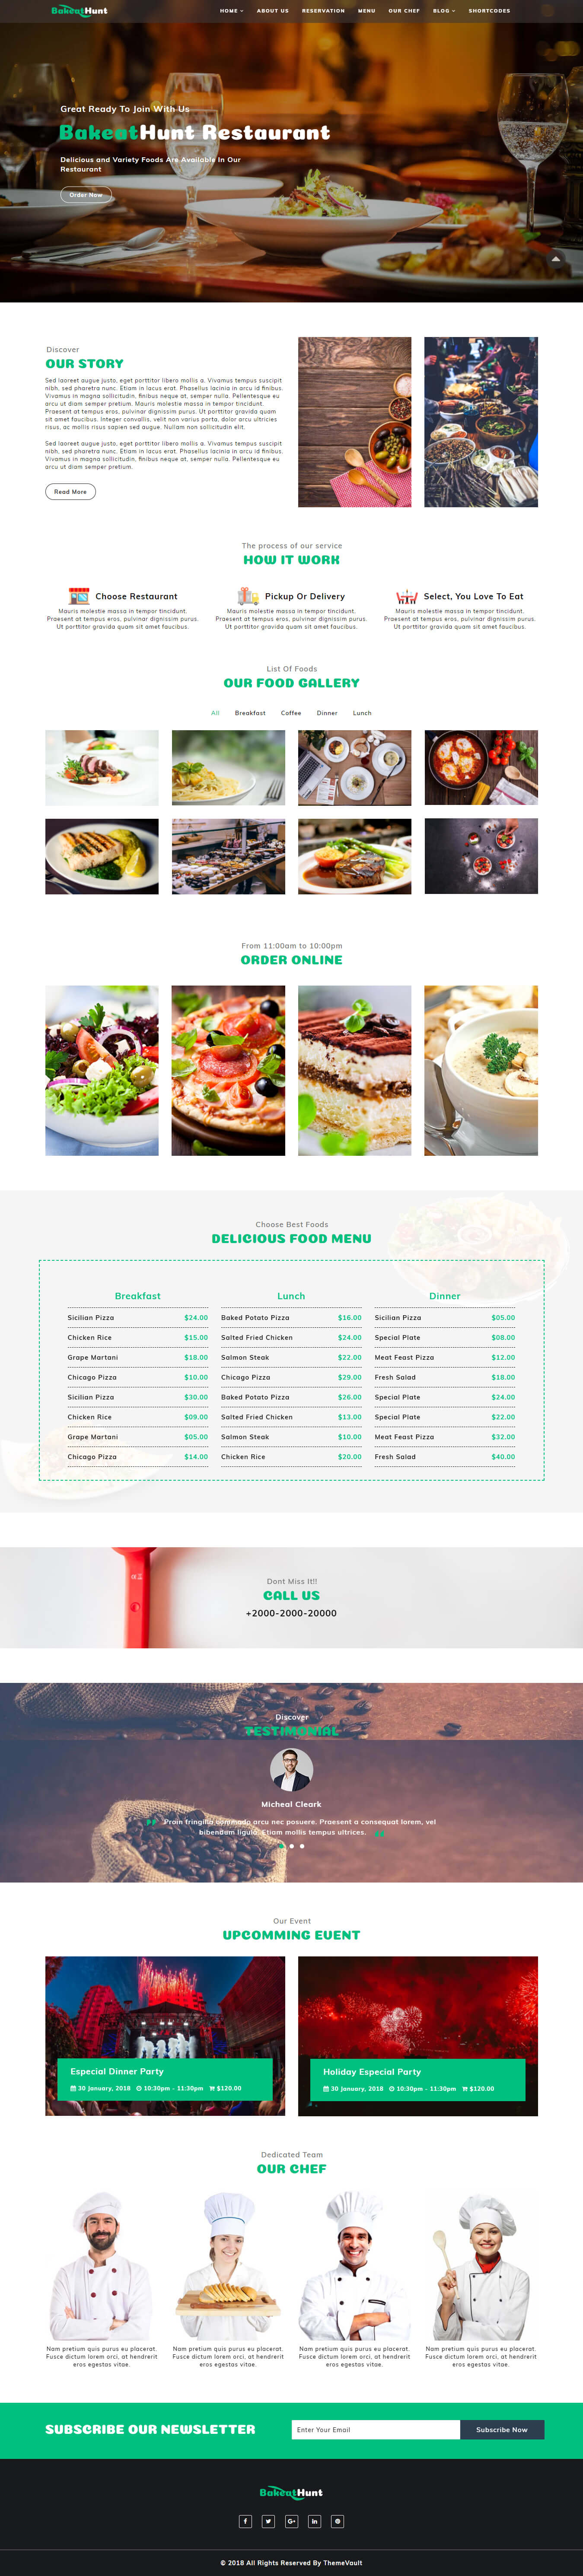 BakeatHunt – Best Restaurant Web Design Template HTML5